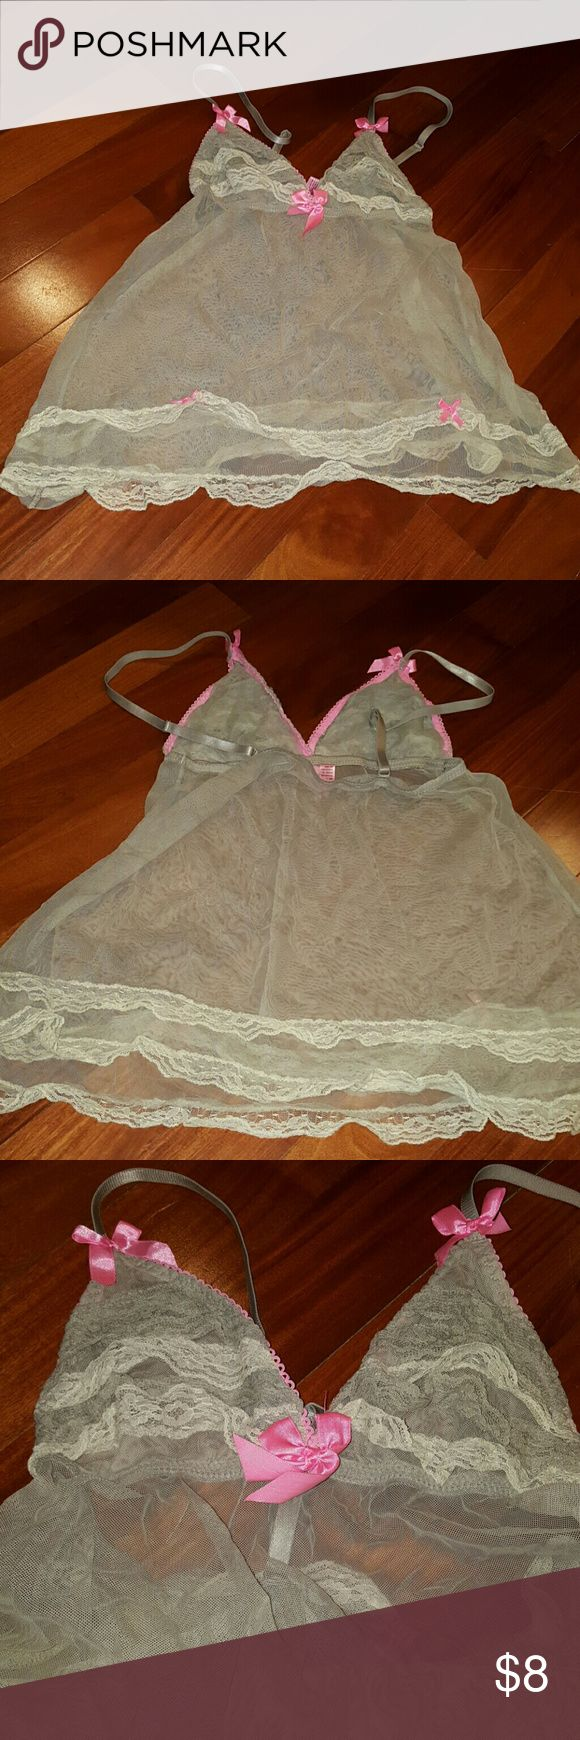 NWT SEXY LACE CHEMISE PANTIES NIGHTY PINK BEIGE L new with tags Pink and beige sexy lace chemise slip nighty with matching panties, size large. Intimates & Sleepwear Chemises & Slips